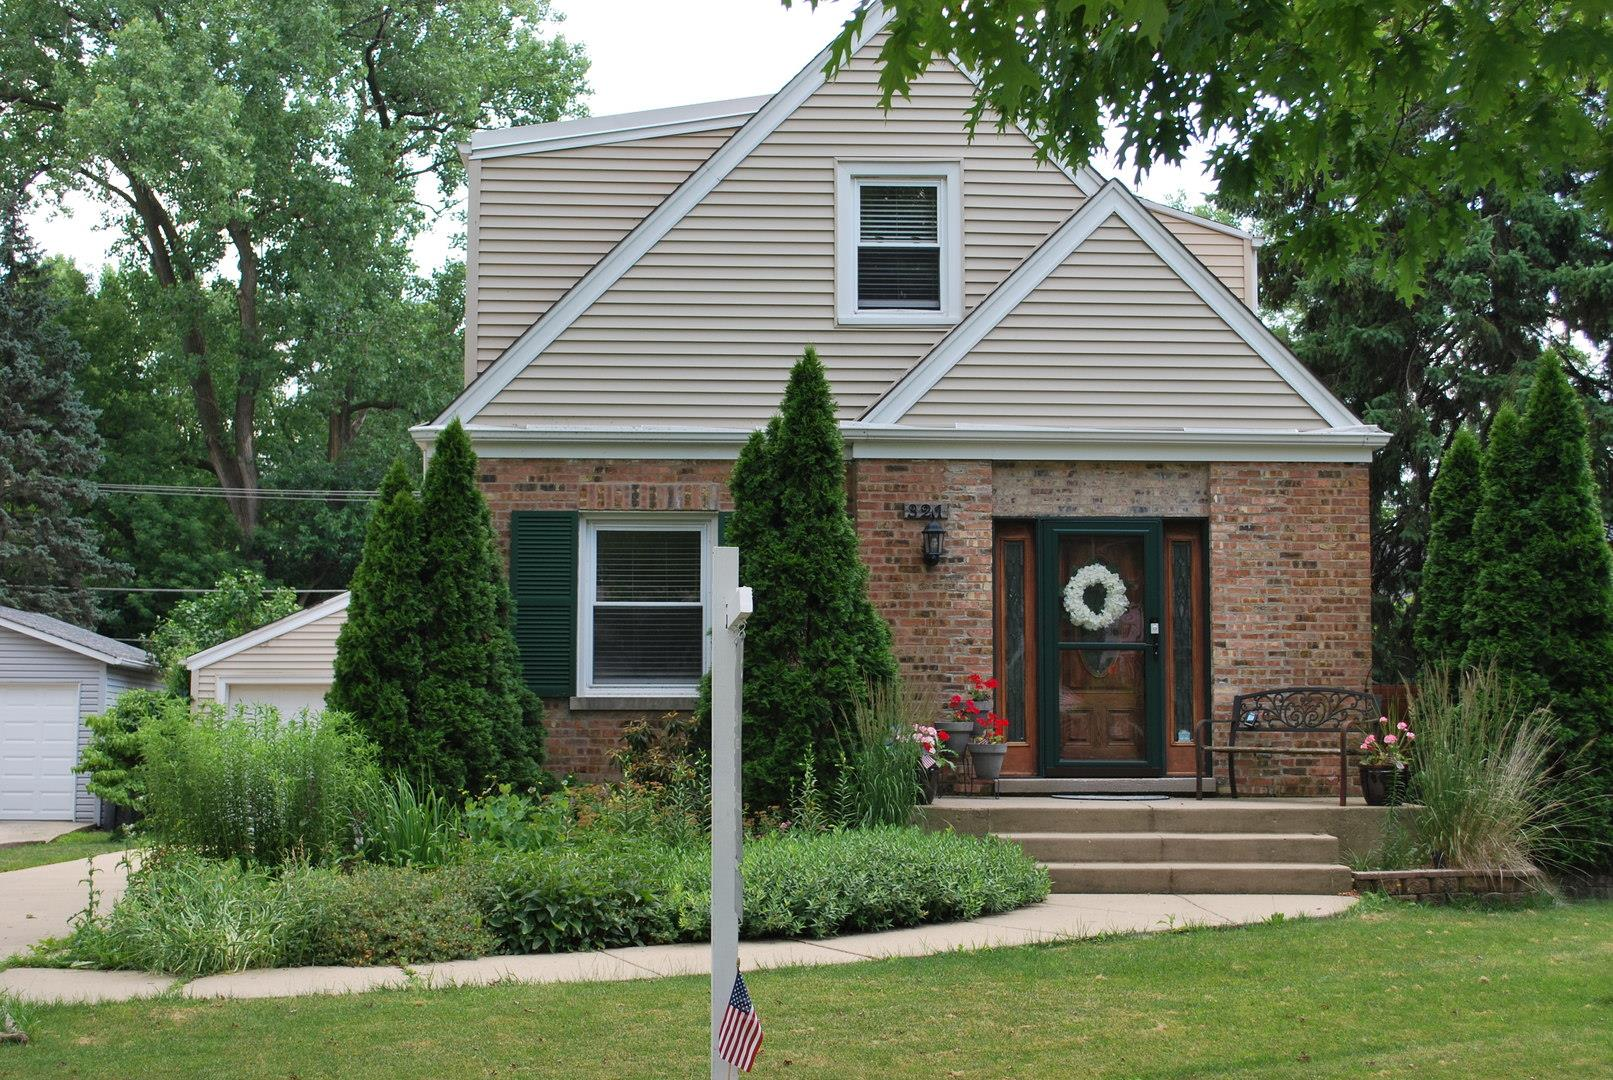 321 E Washington Street, Des Plaines, IL 60016 - #: 10741033